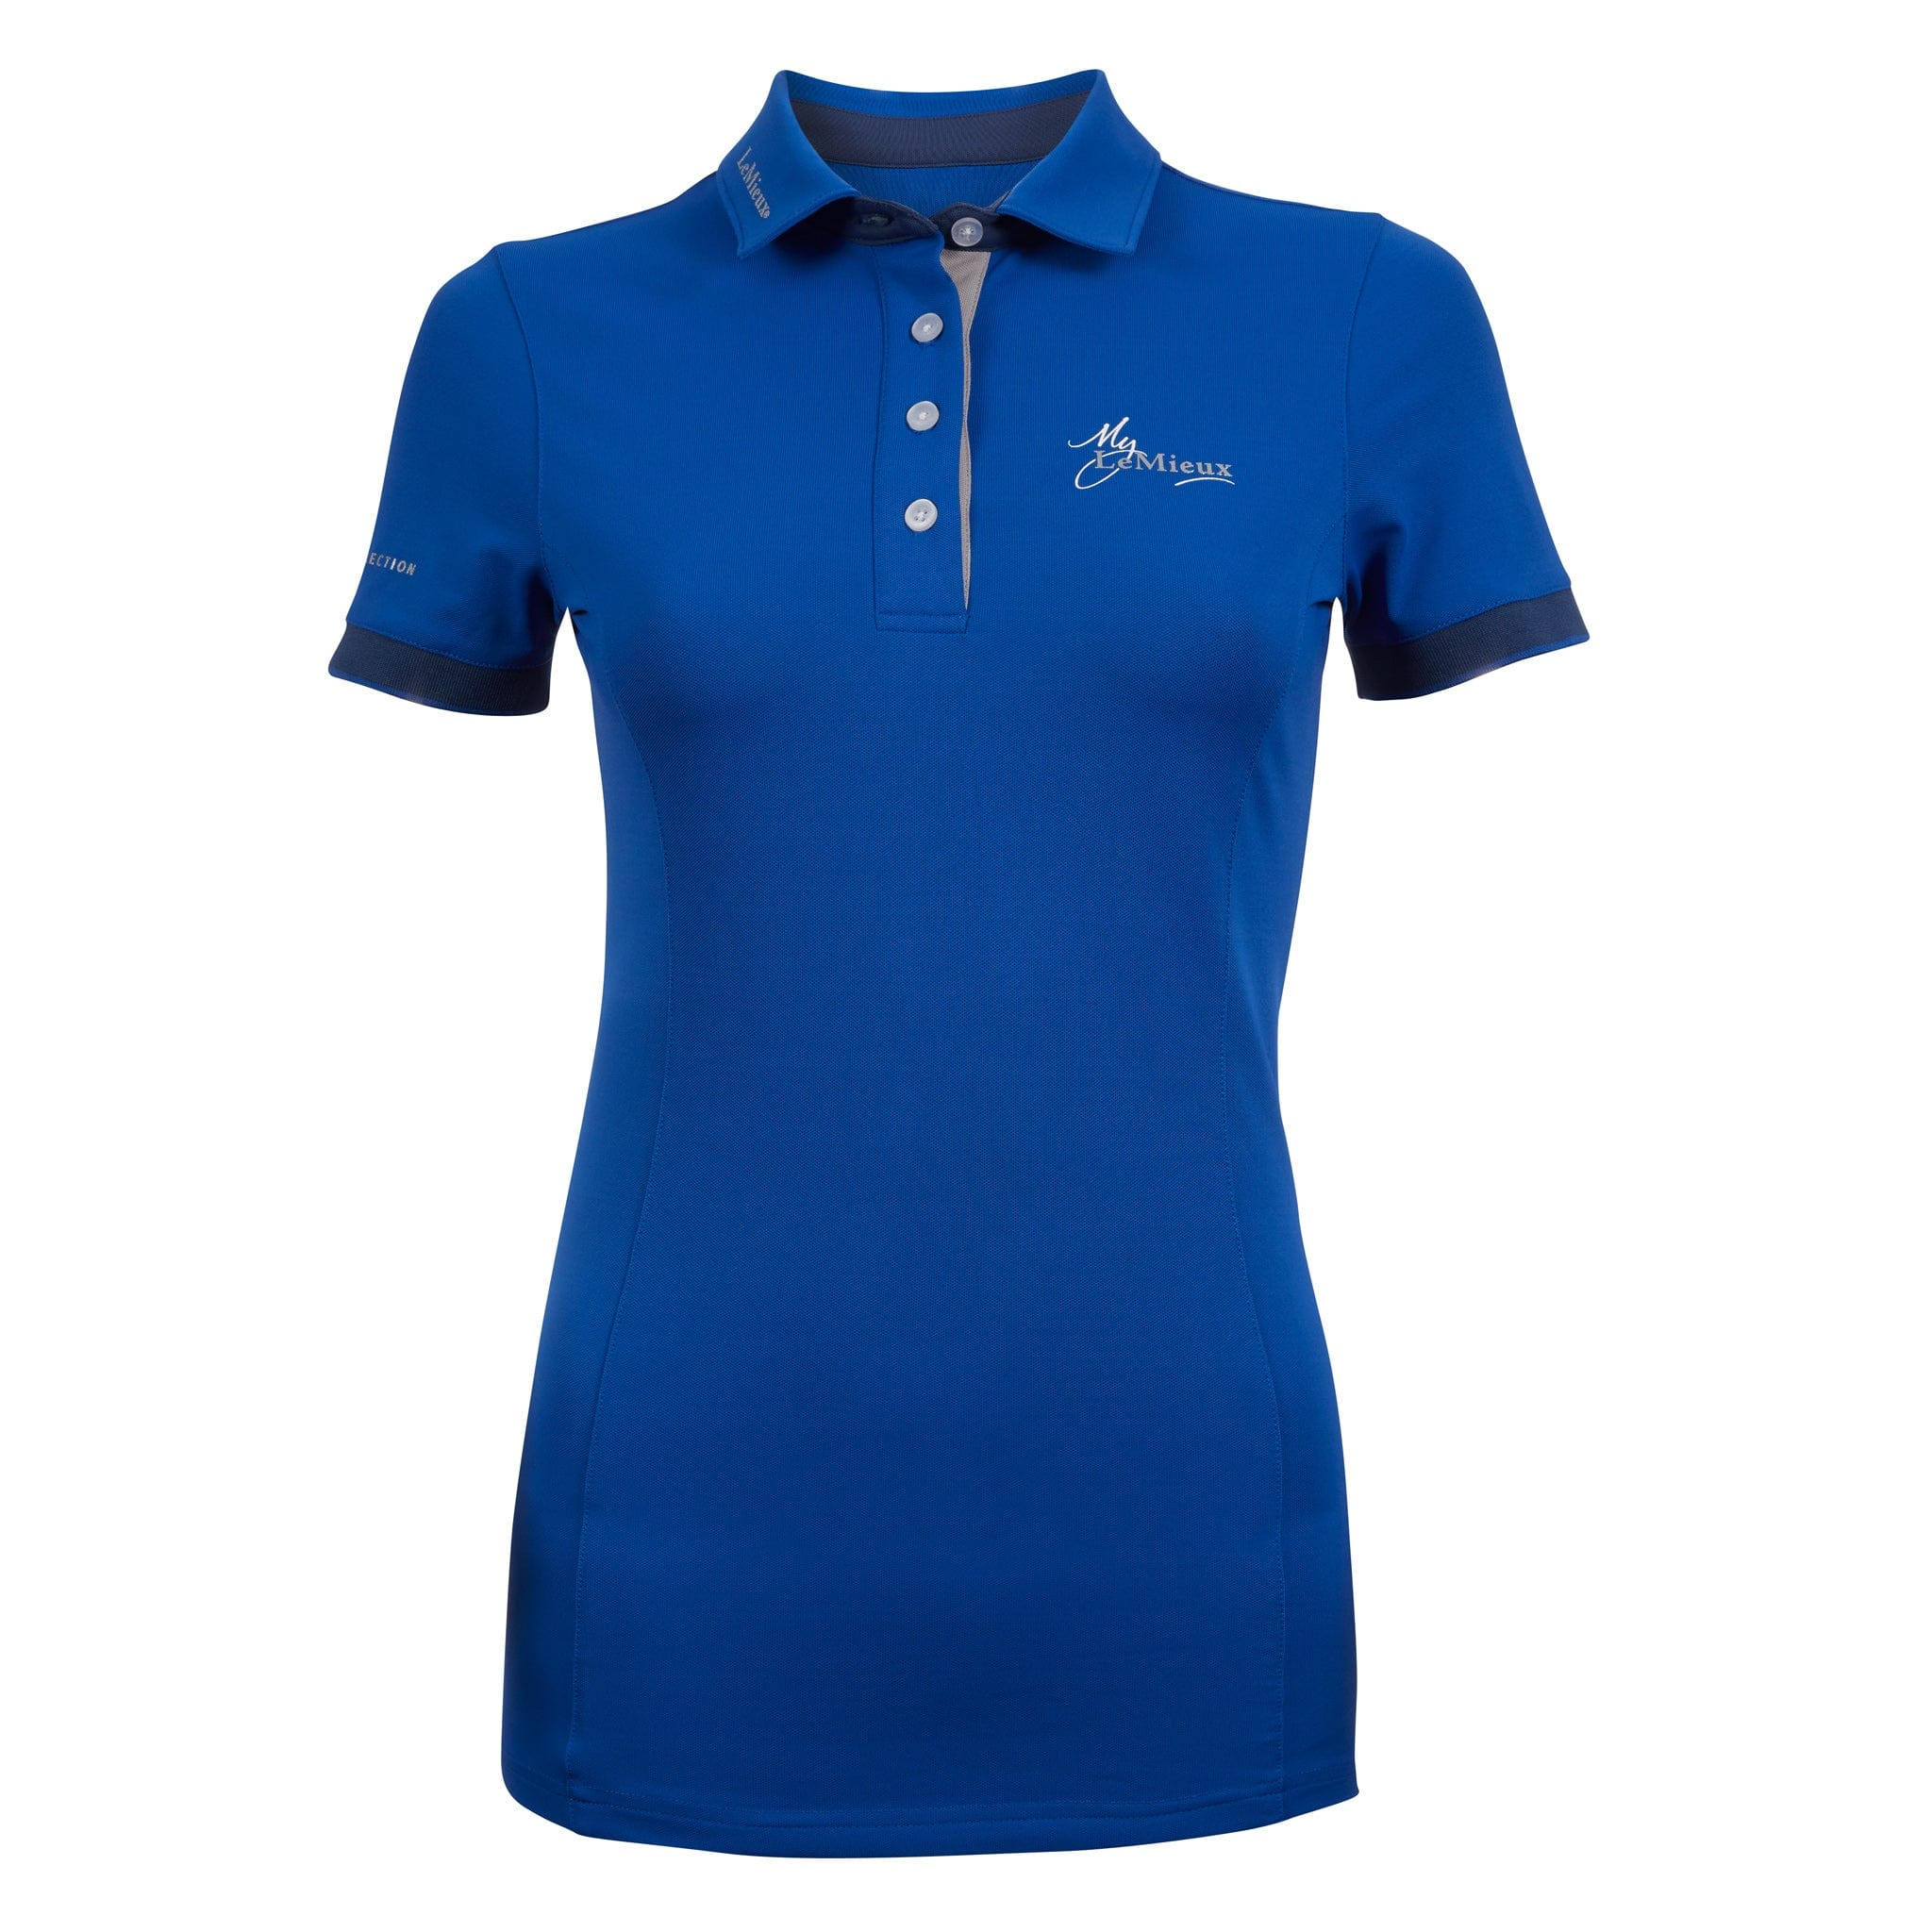 LeMieux Polo Shirt Benetton Blue Front View 6071